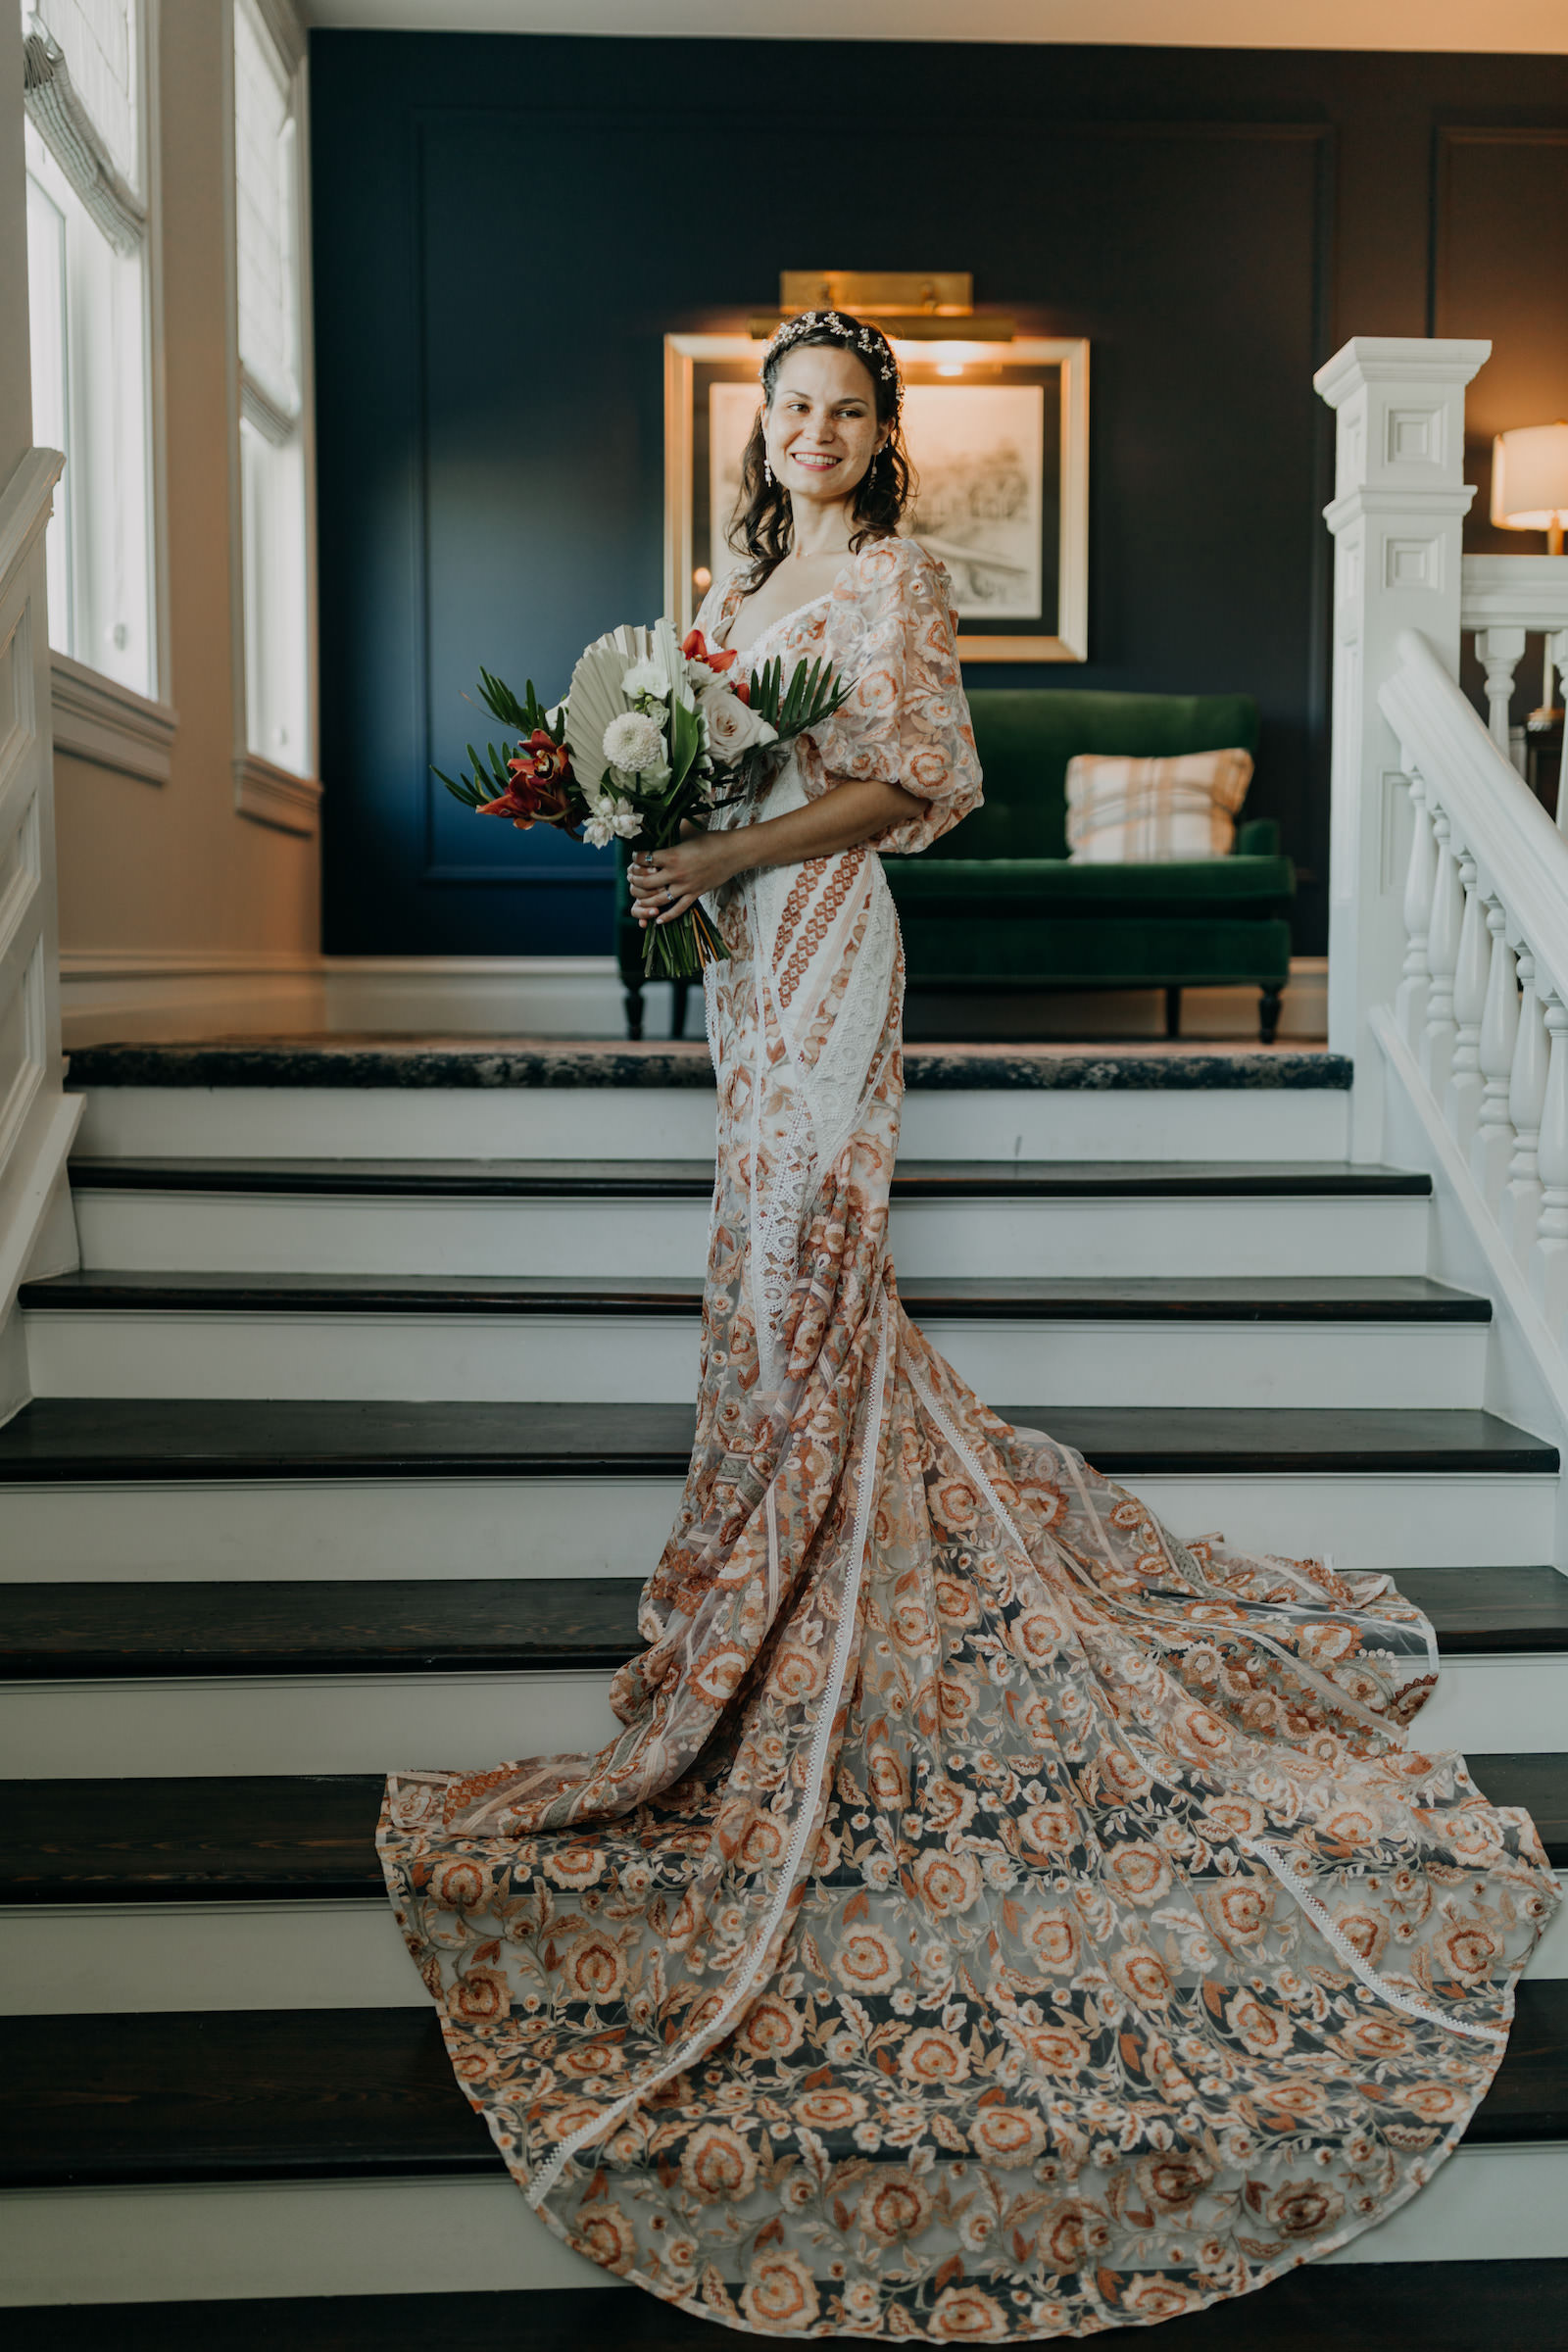 Indoor Bridal Portrait on Staircase   Boho Gold Bronze Embroidered Overlay Wedding Dress Bridal Gown with Illusion Sleeves and Train   Tropical Boho Bridal Bouquet   Amber McWhorter Photography